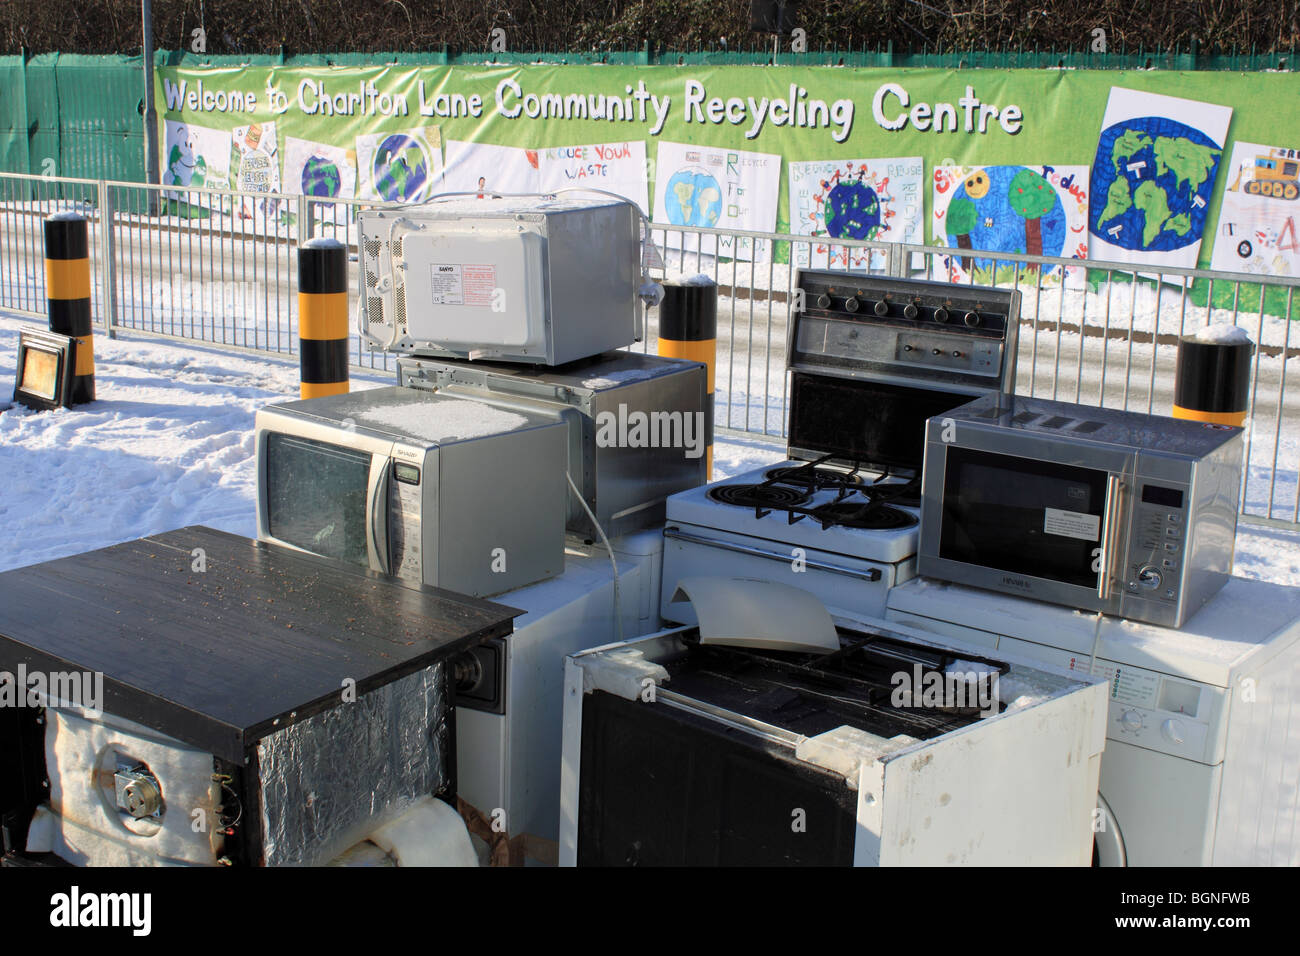 Old cookers and microwaves at Charlton Lane Community Recycling Centre, Shepperton, Surrey, England, Great Britain, - Stock Image